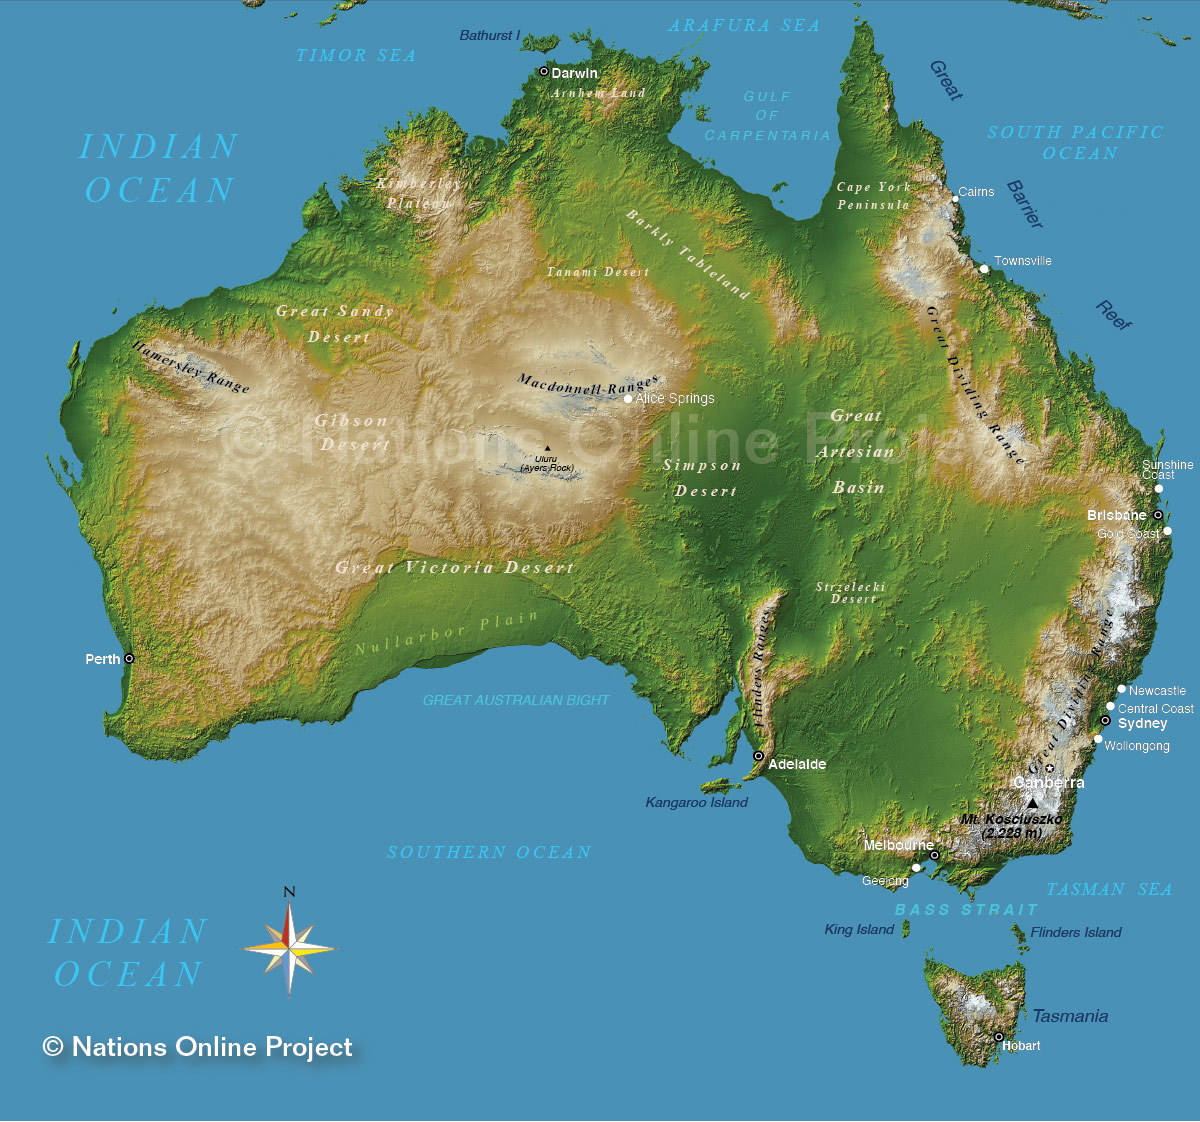 Topographic Map of Australia - Nations Online Project